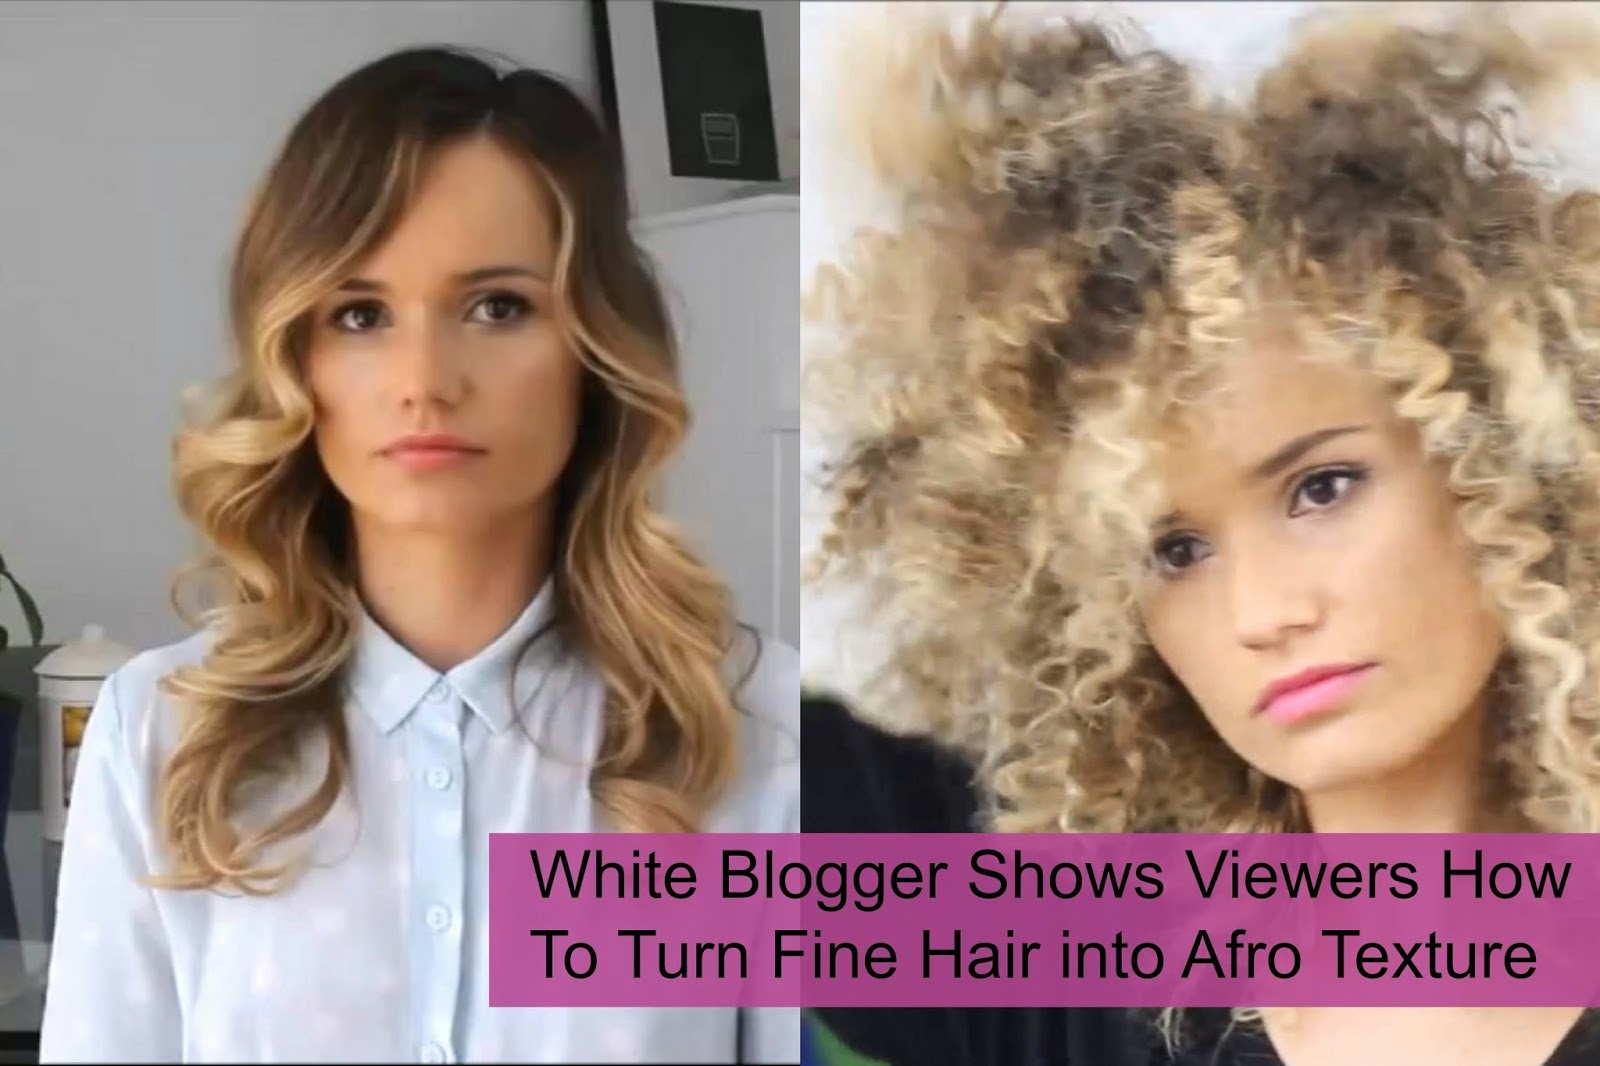 White Blogger Shows Viewers How To Turn Fine Hair into Afro Texture